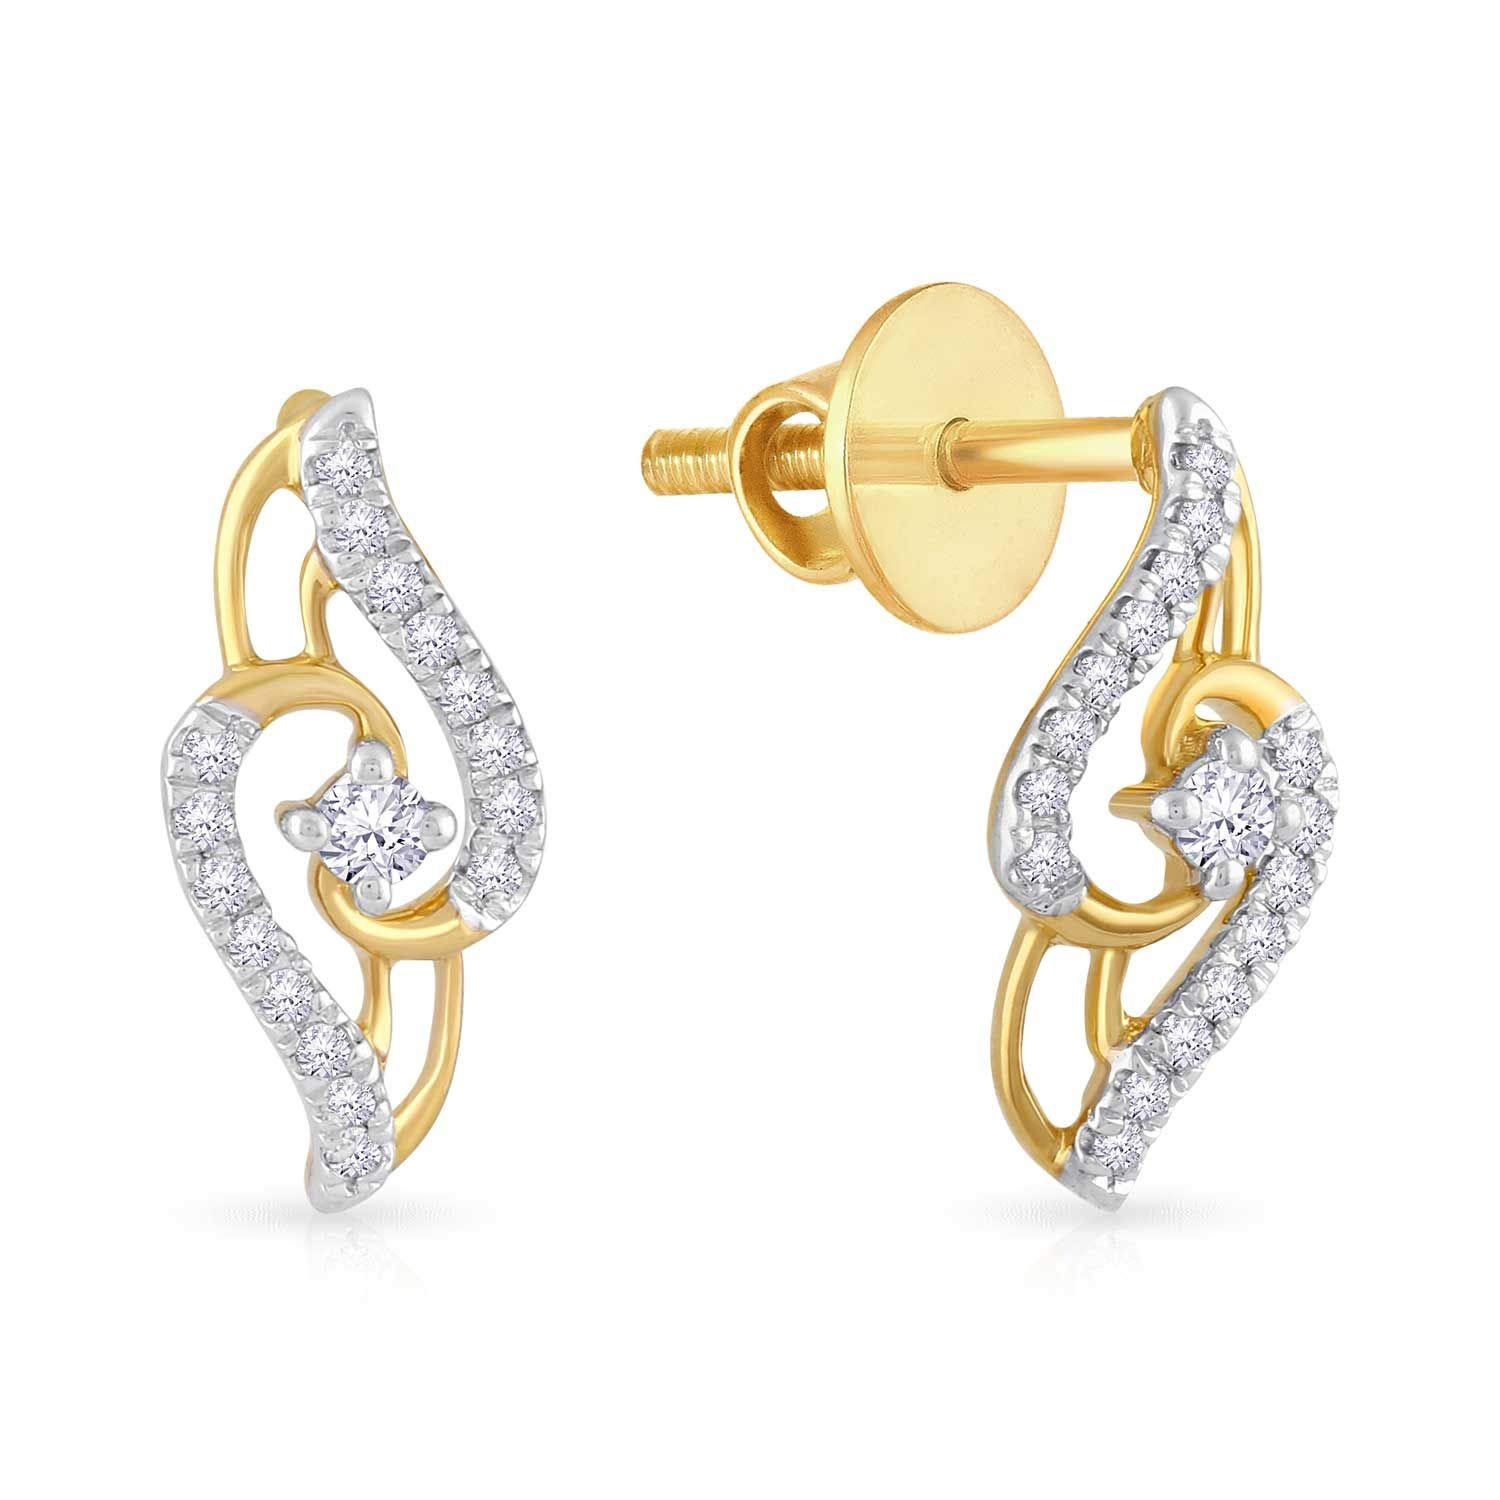 0a113cb31d353 Malabar Gold and Diamonds 18KT Yellow Gold and Diamond Stud Earrings for  Women